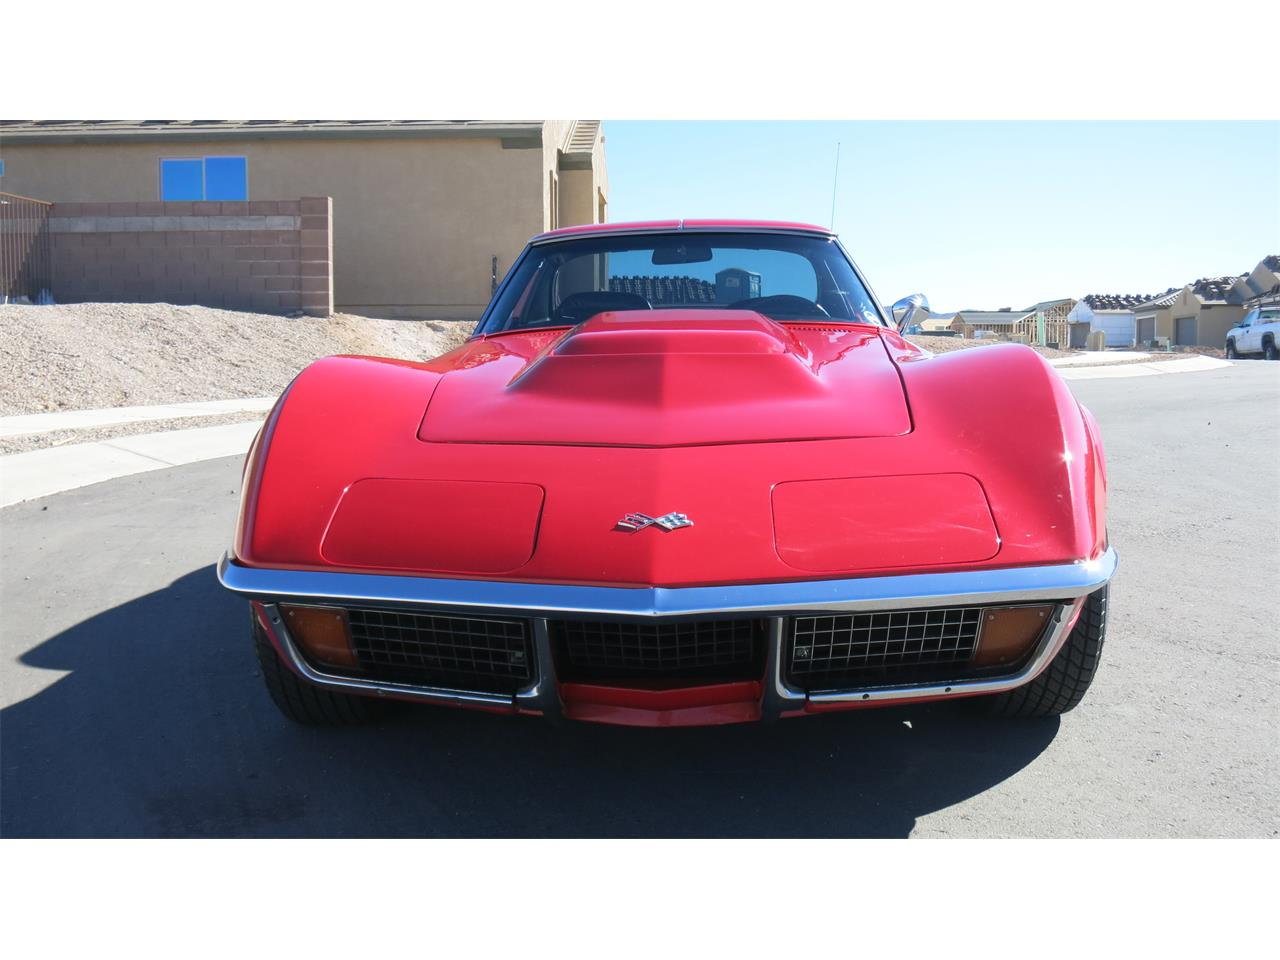 Large Picture of Classic 1972 Corvette located in Vail Arizona - $25,000.00 - OCSF